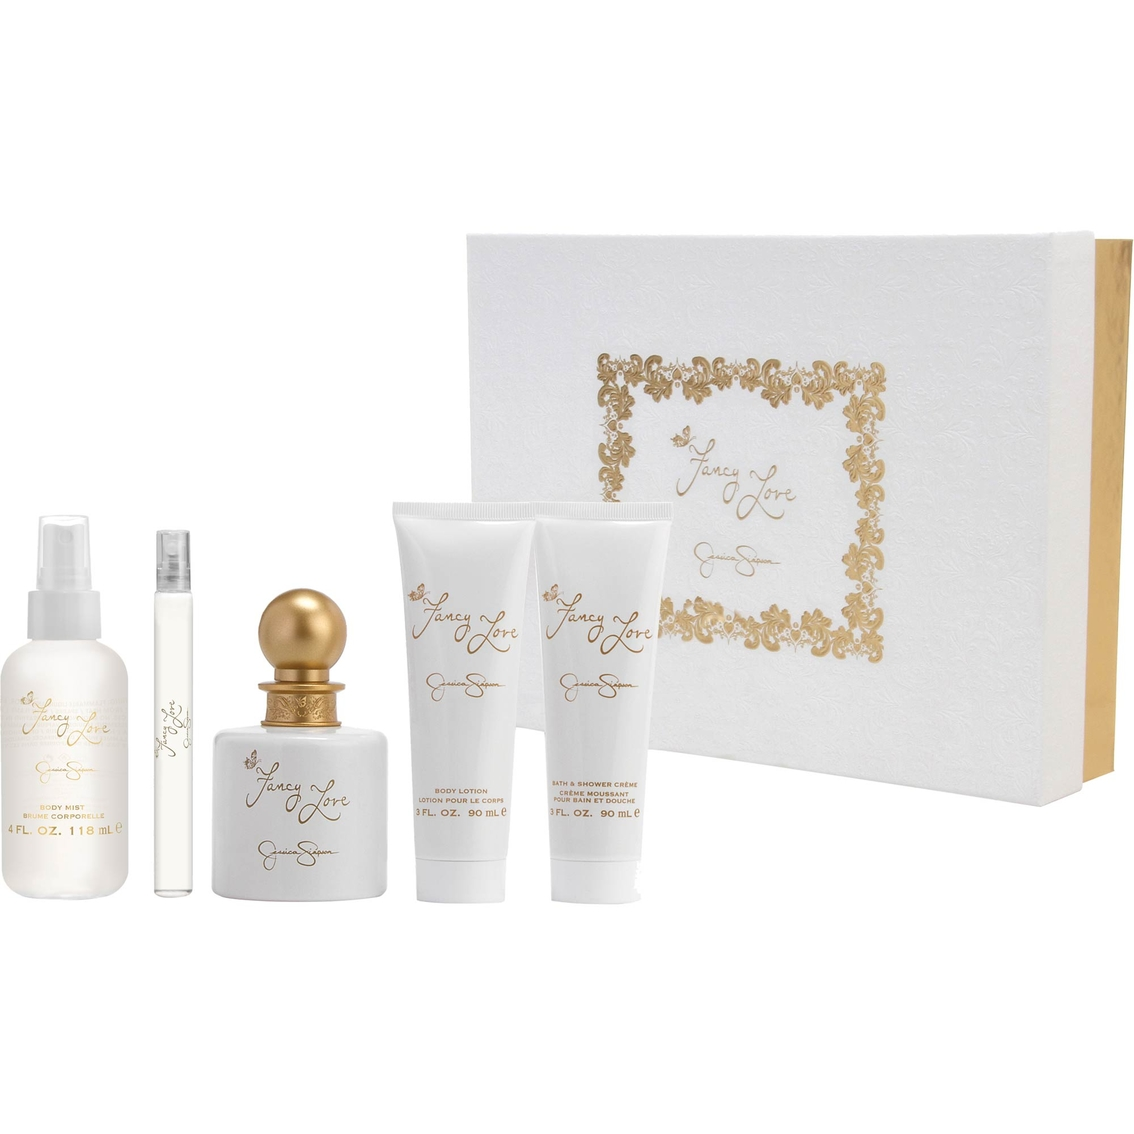 ee4cbd7f21e Jessica Simpson Fancy Love 5 Pc. Gift Set